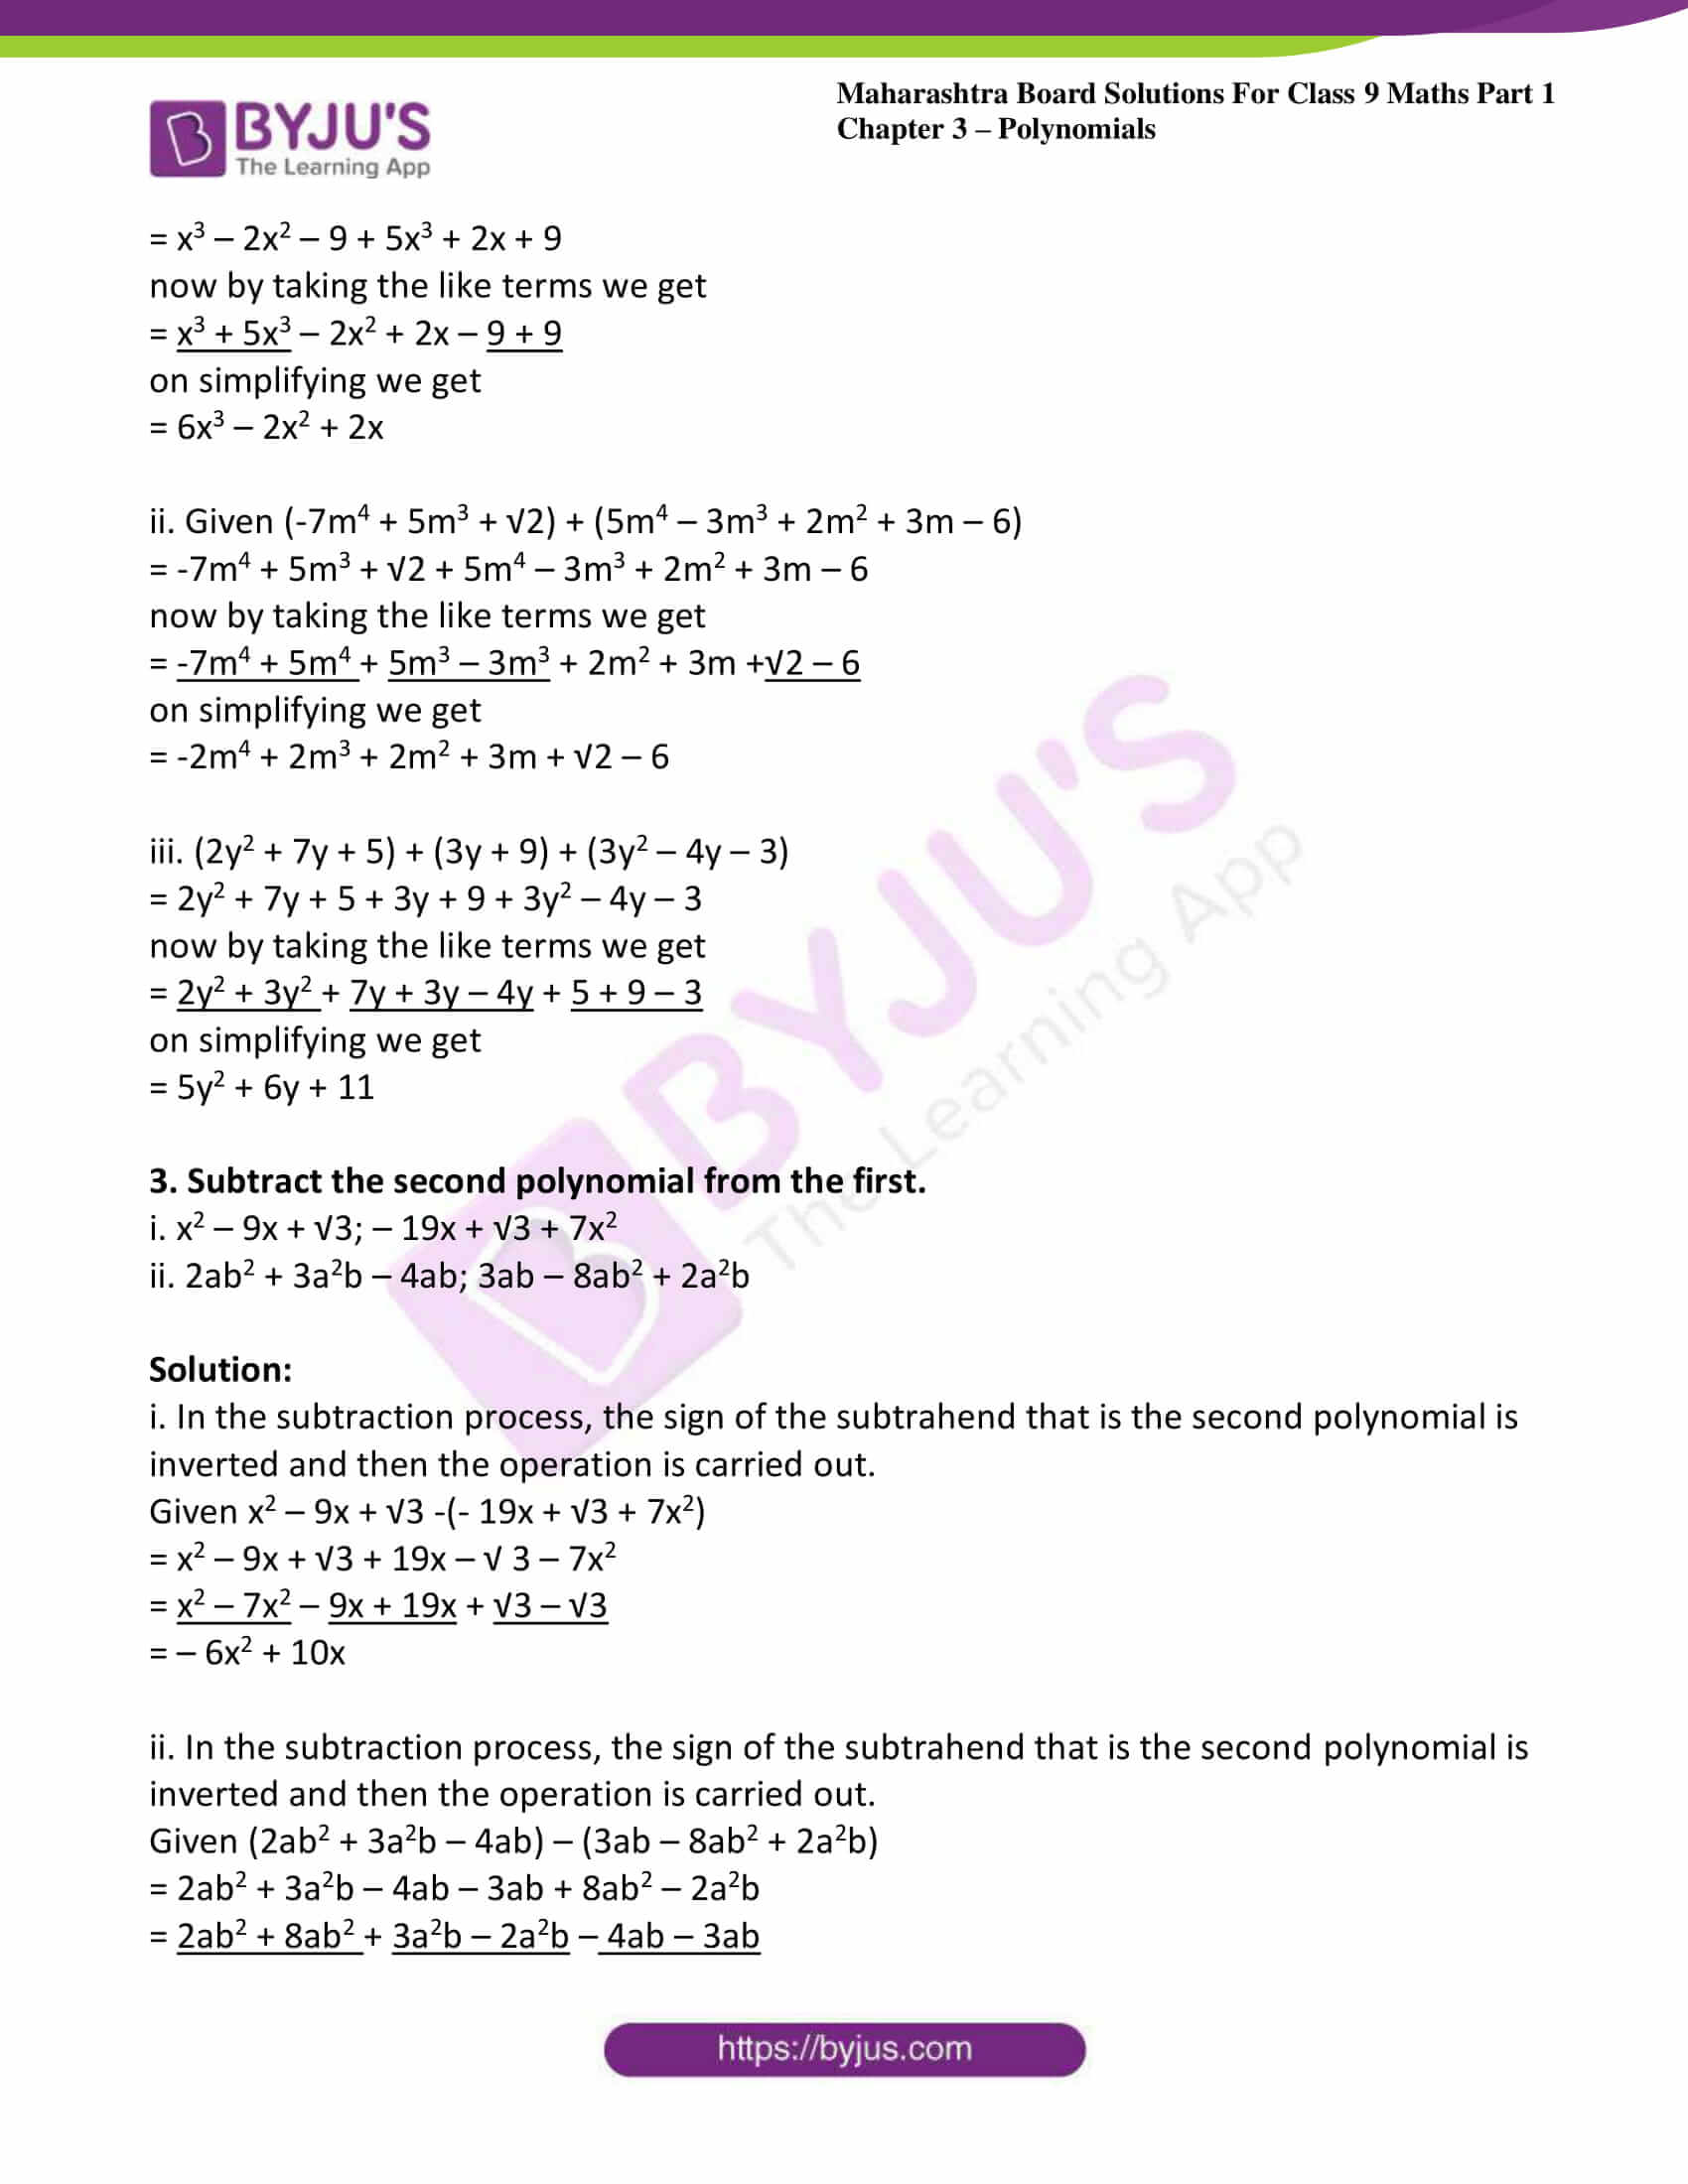 msbshse sol class 9 maths part 1 chapter 3 polynomials 09